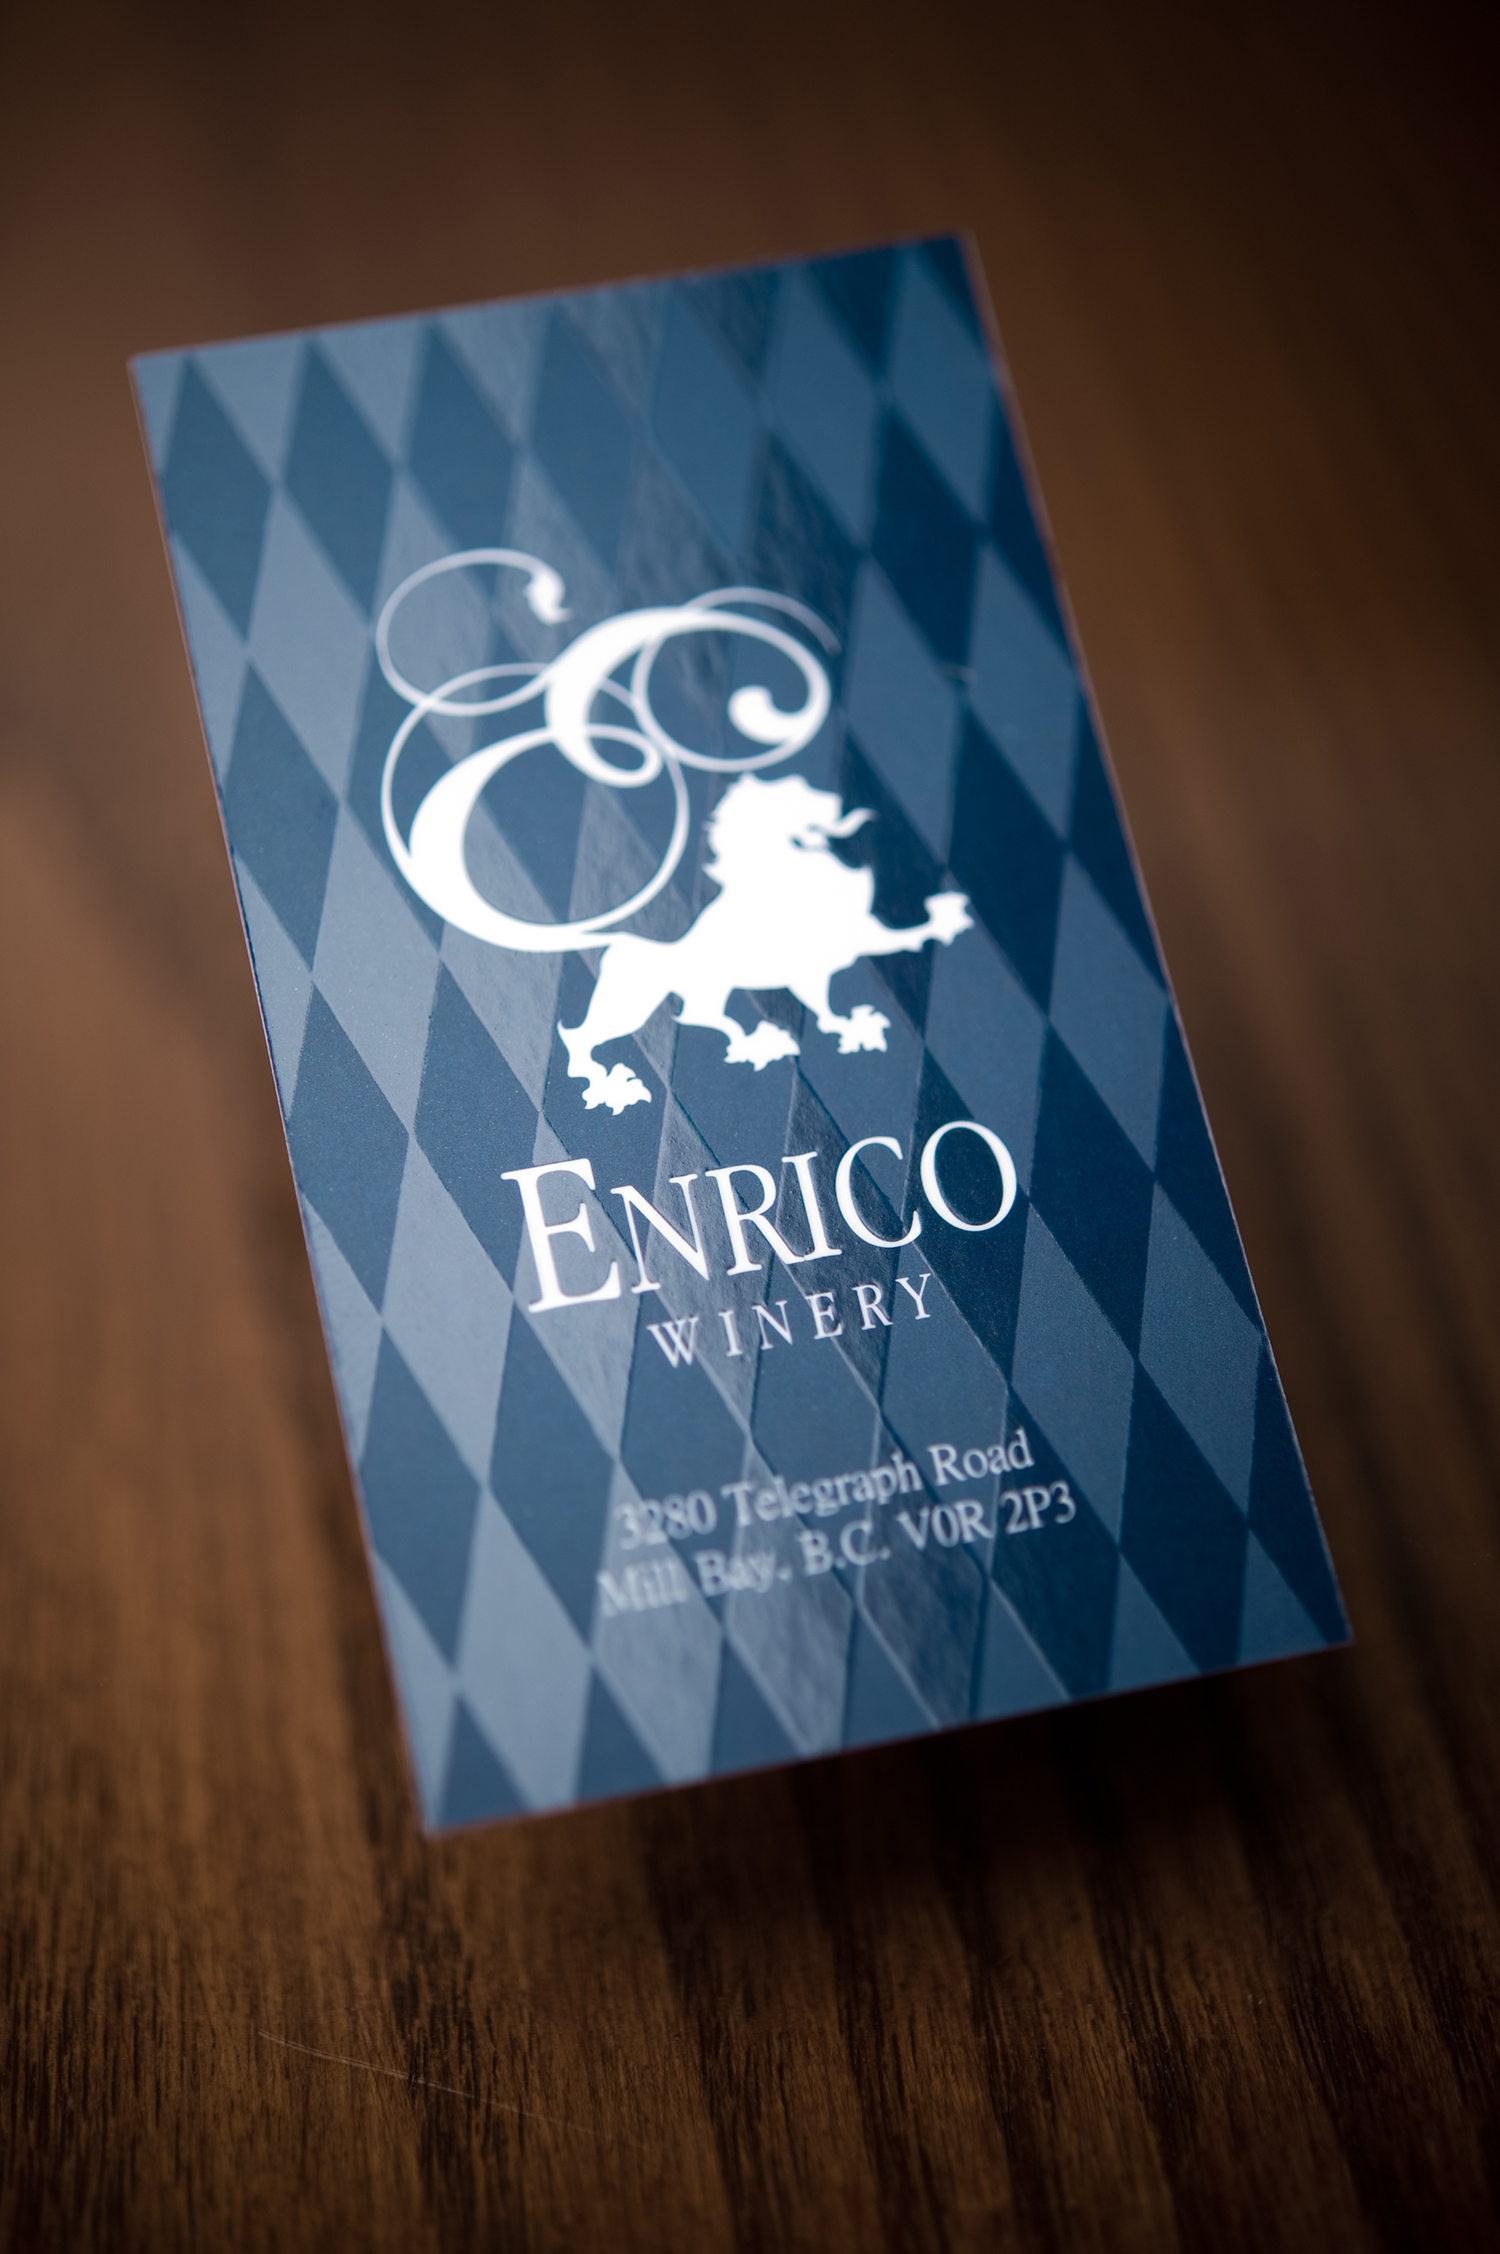 Enrico_BusinessCards (1 of 8).jpgPackaging and Branding Design for Enrico Winery